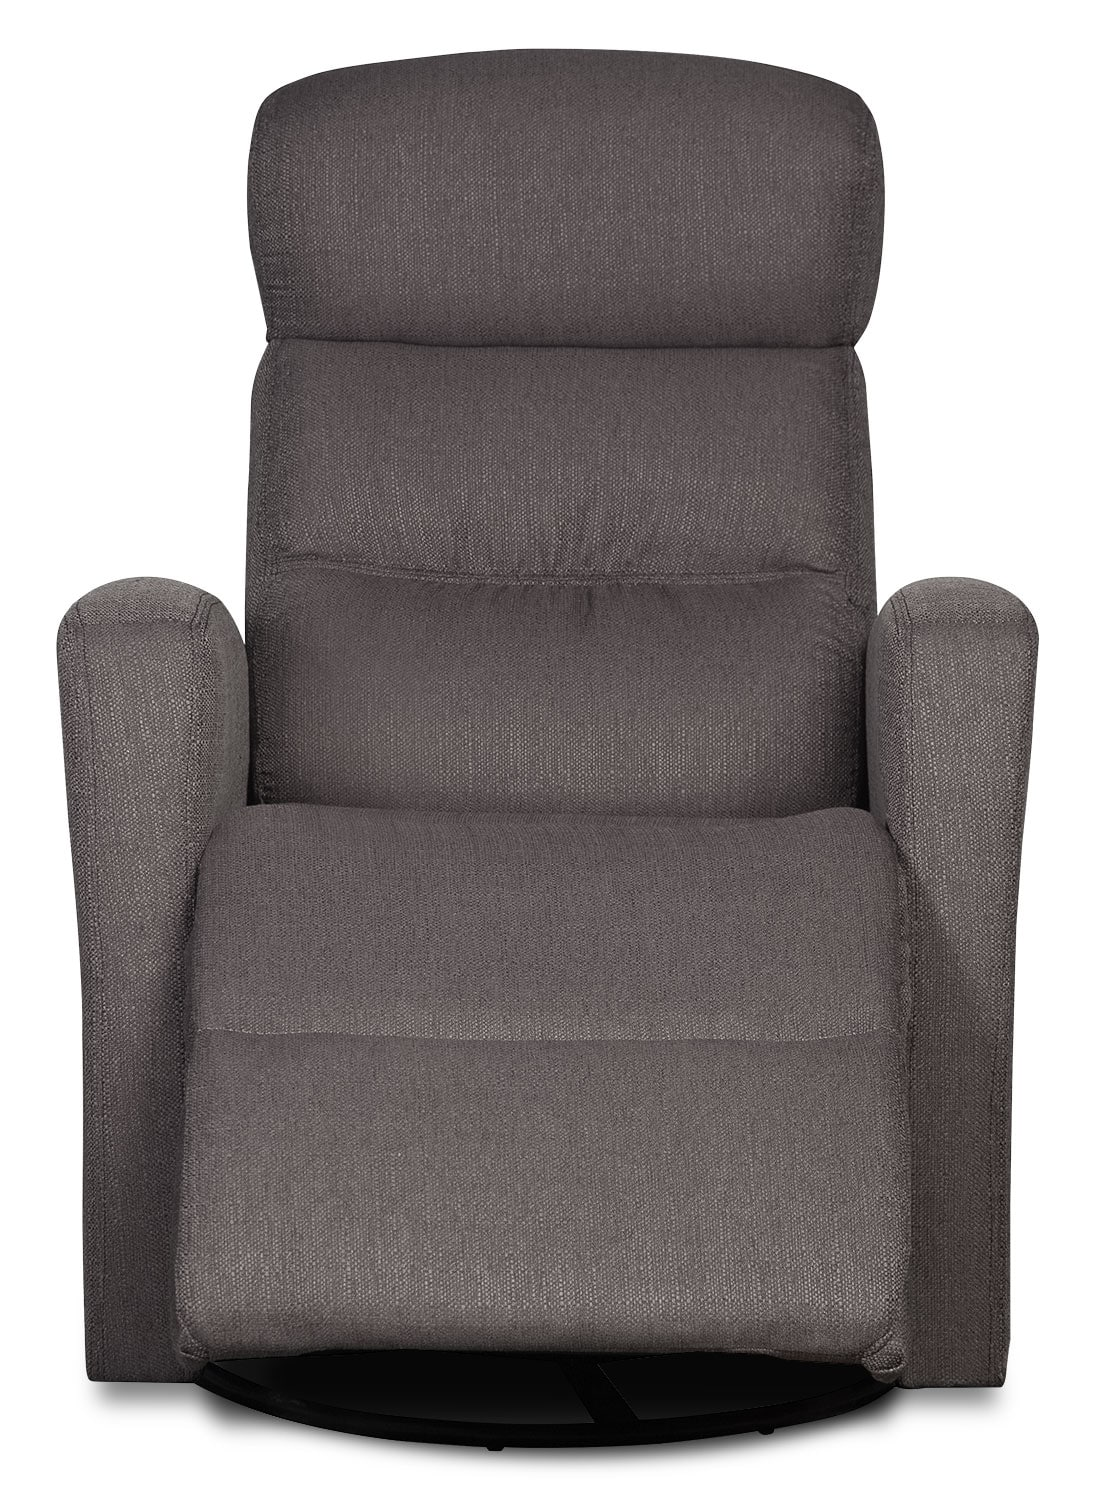 grey fabric swivel office chair colorful chairs penny linen look rocker reclining